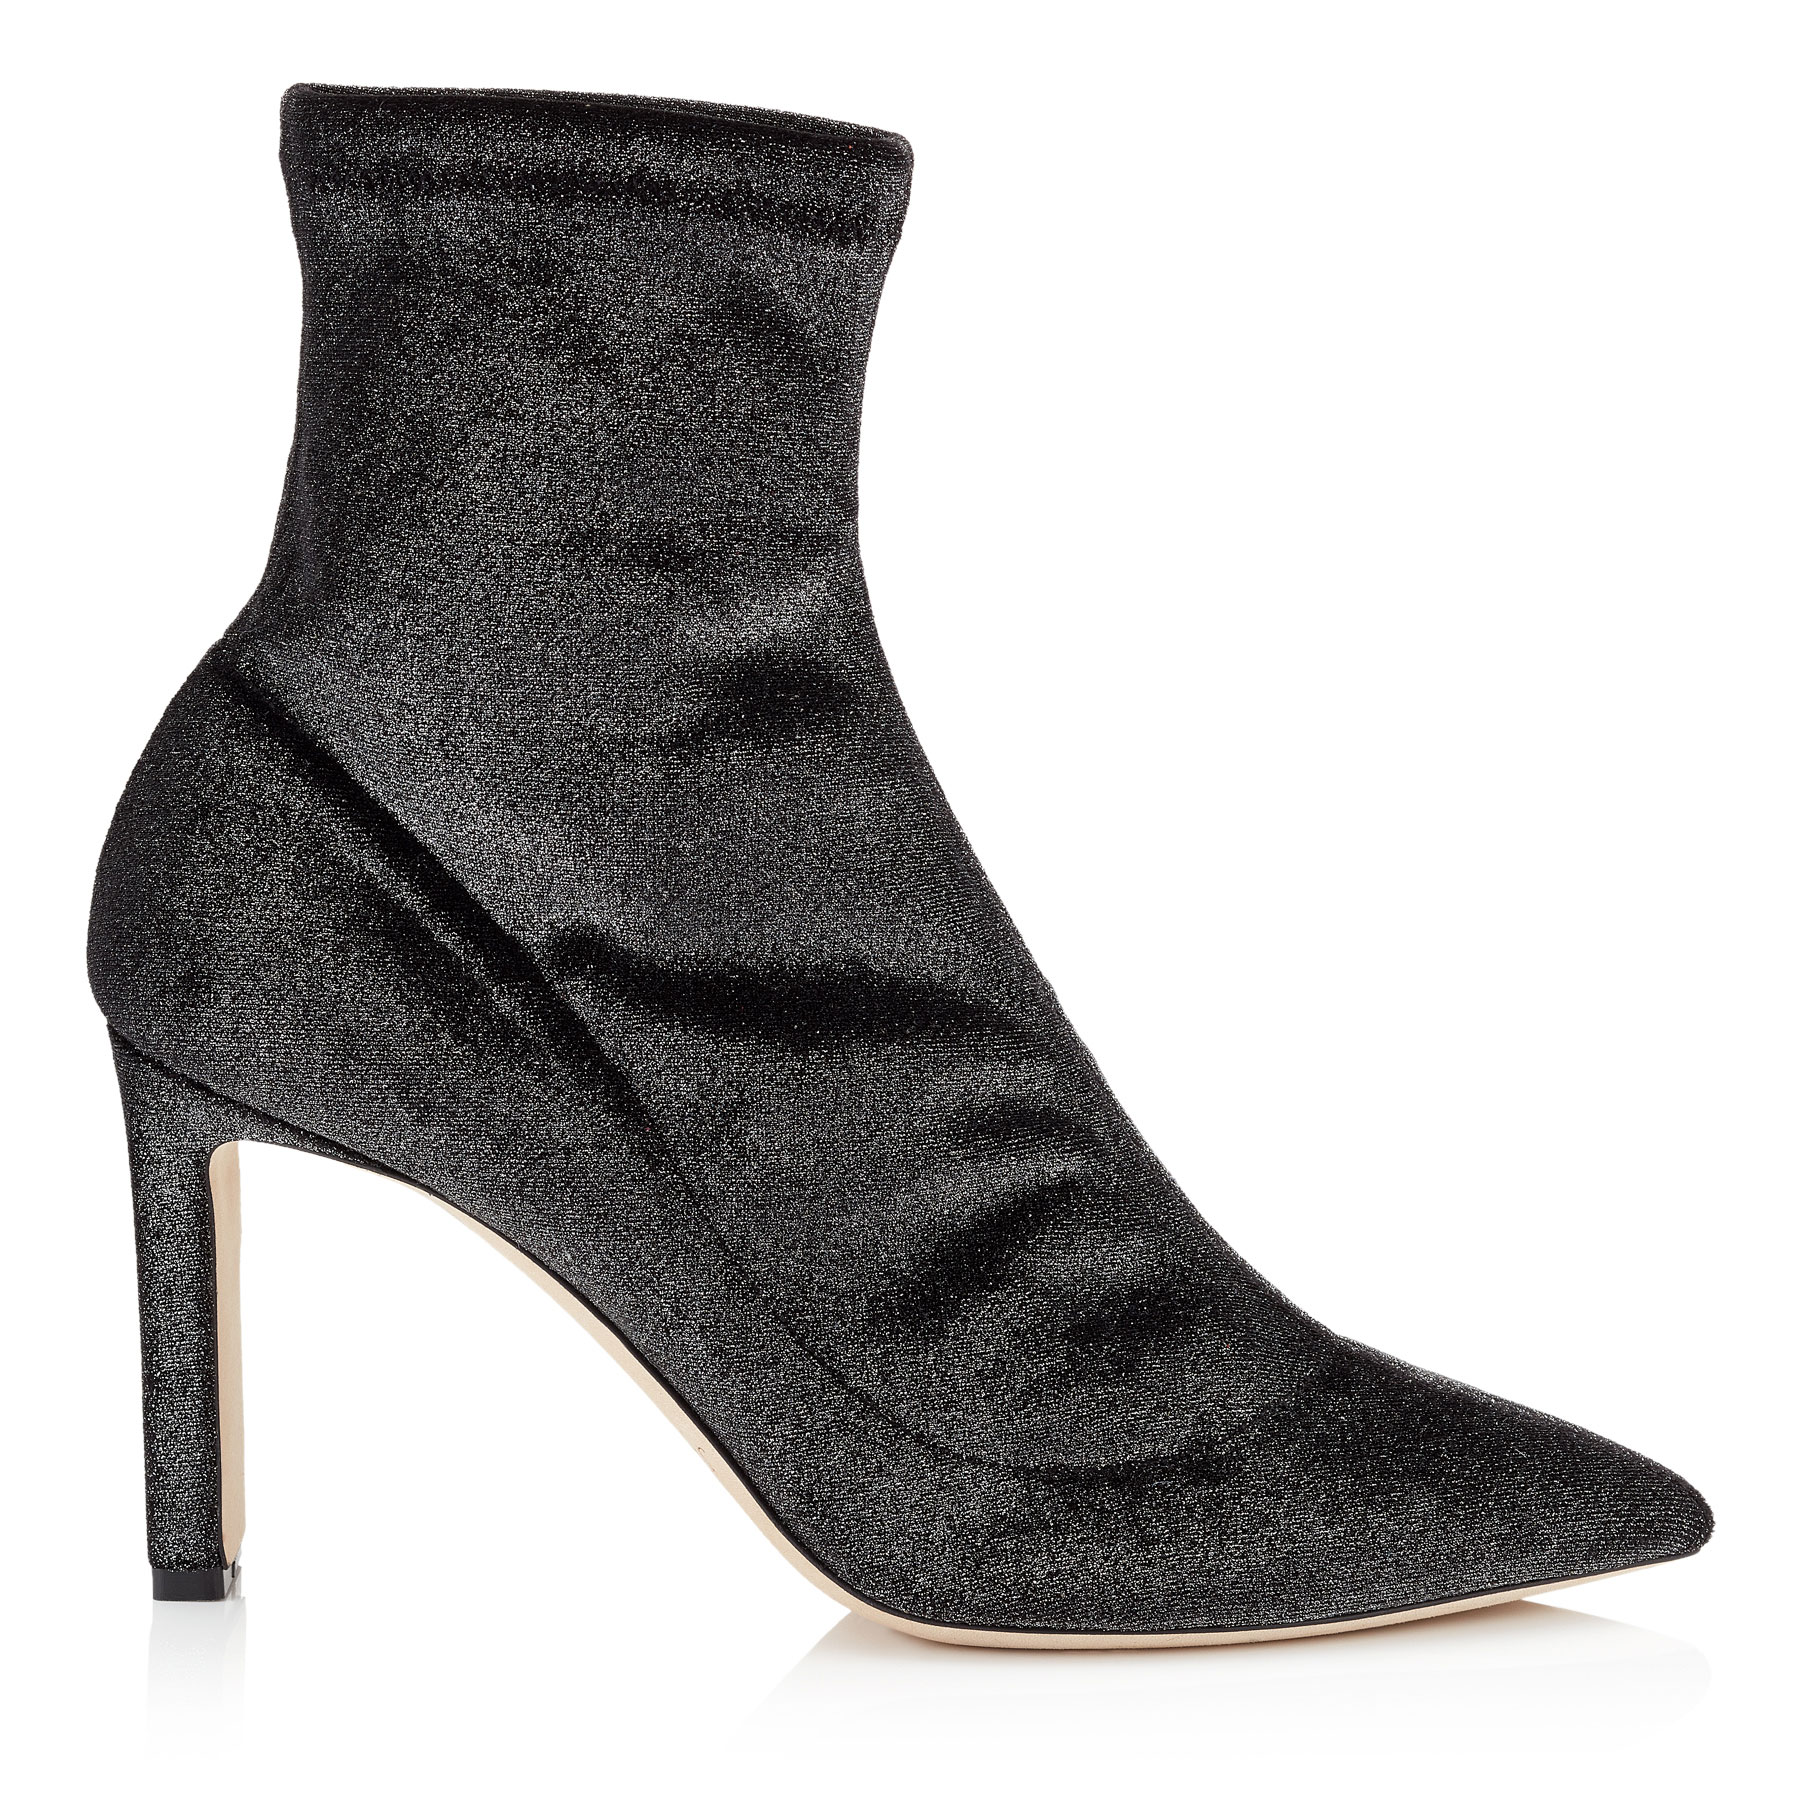 LOUELLA 85 Anthracite Stretched Metallic Velvet Boots